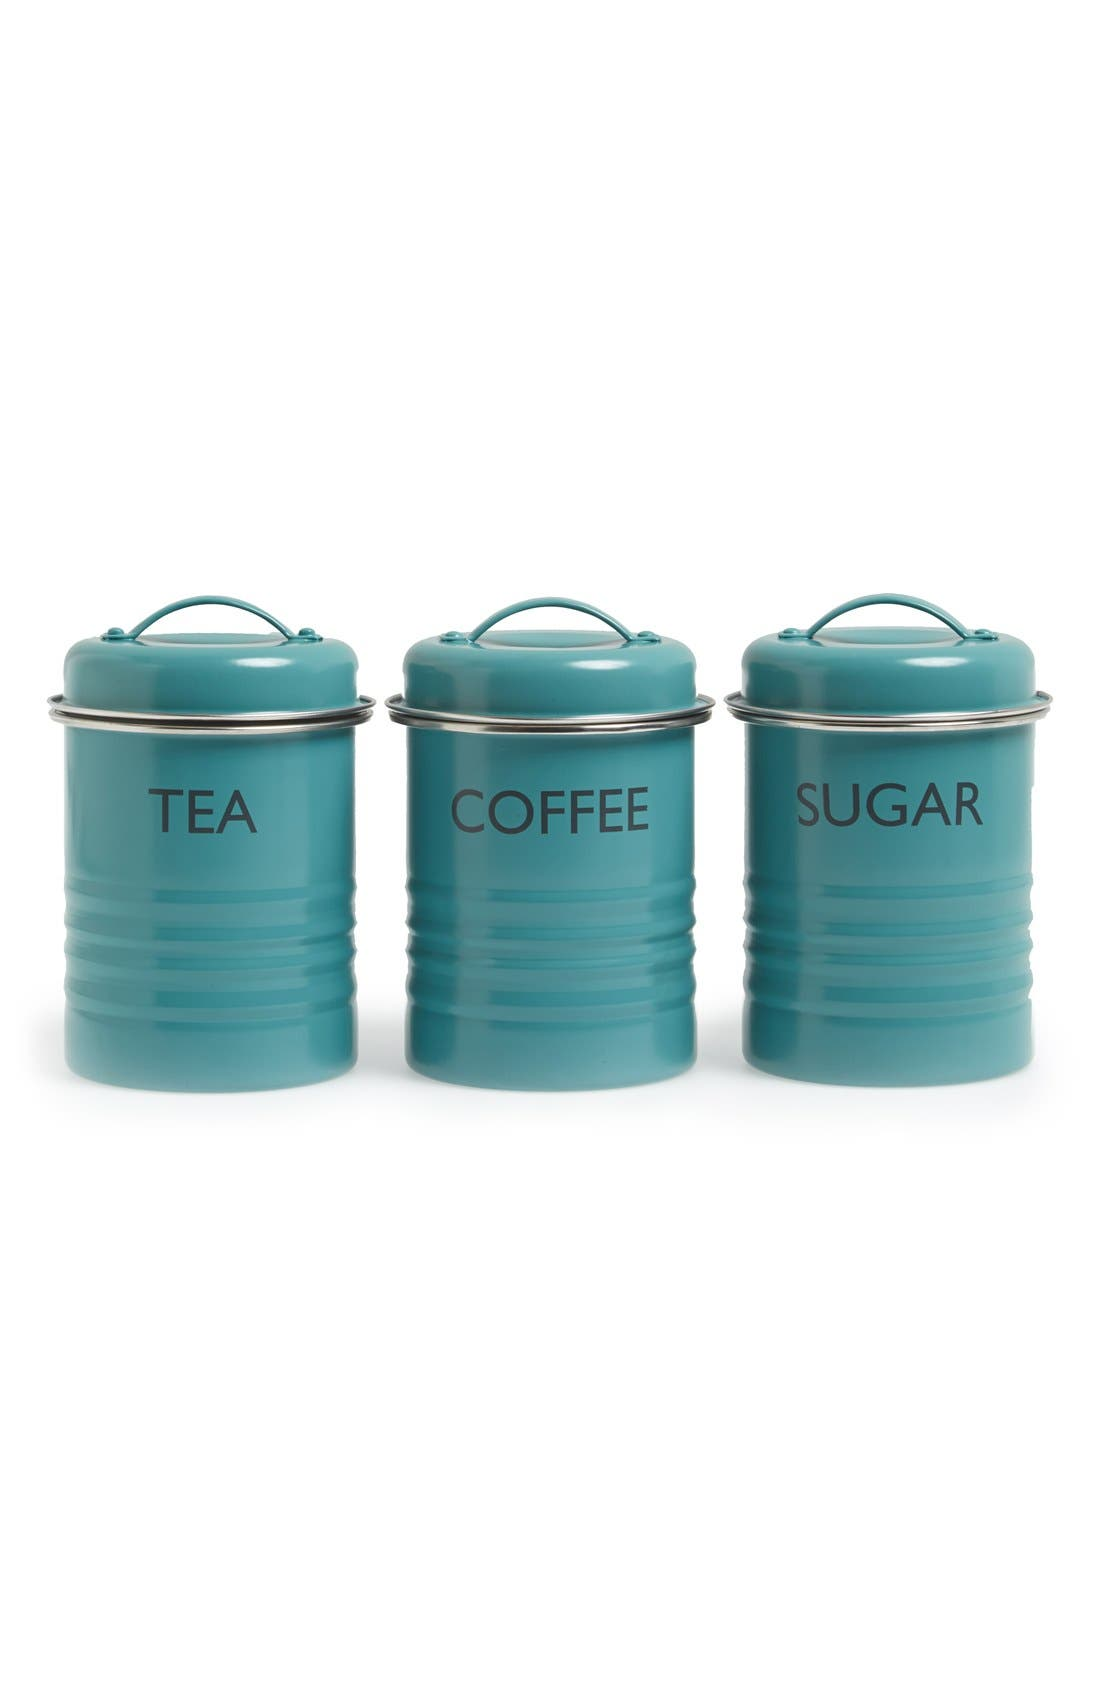 Alternate Image 1 Selected - Typhoon 'Vintage Kitchen - Summer House' Enamel Tea, Coffee & Sugar Storage Canisters (Set of 3)